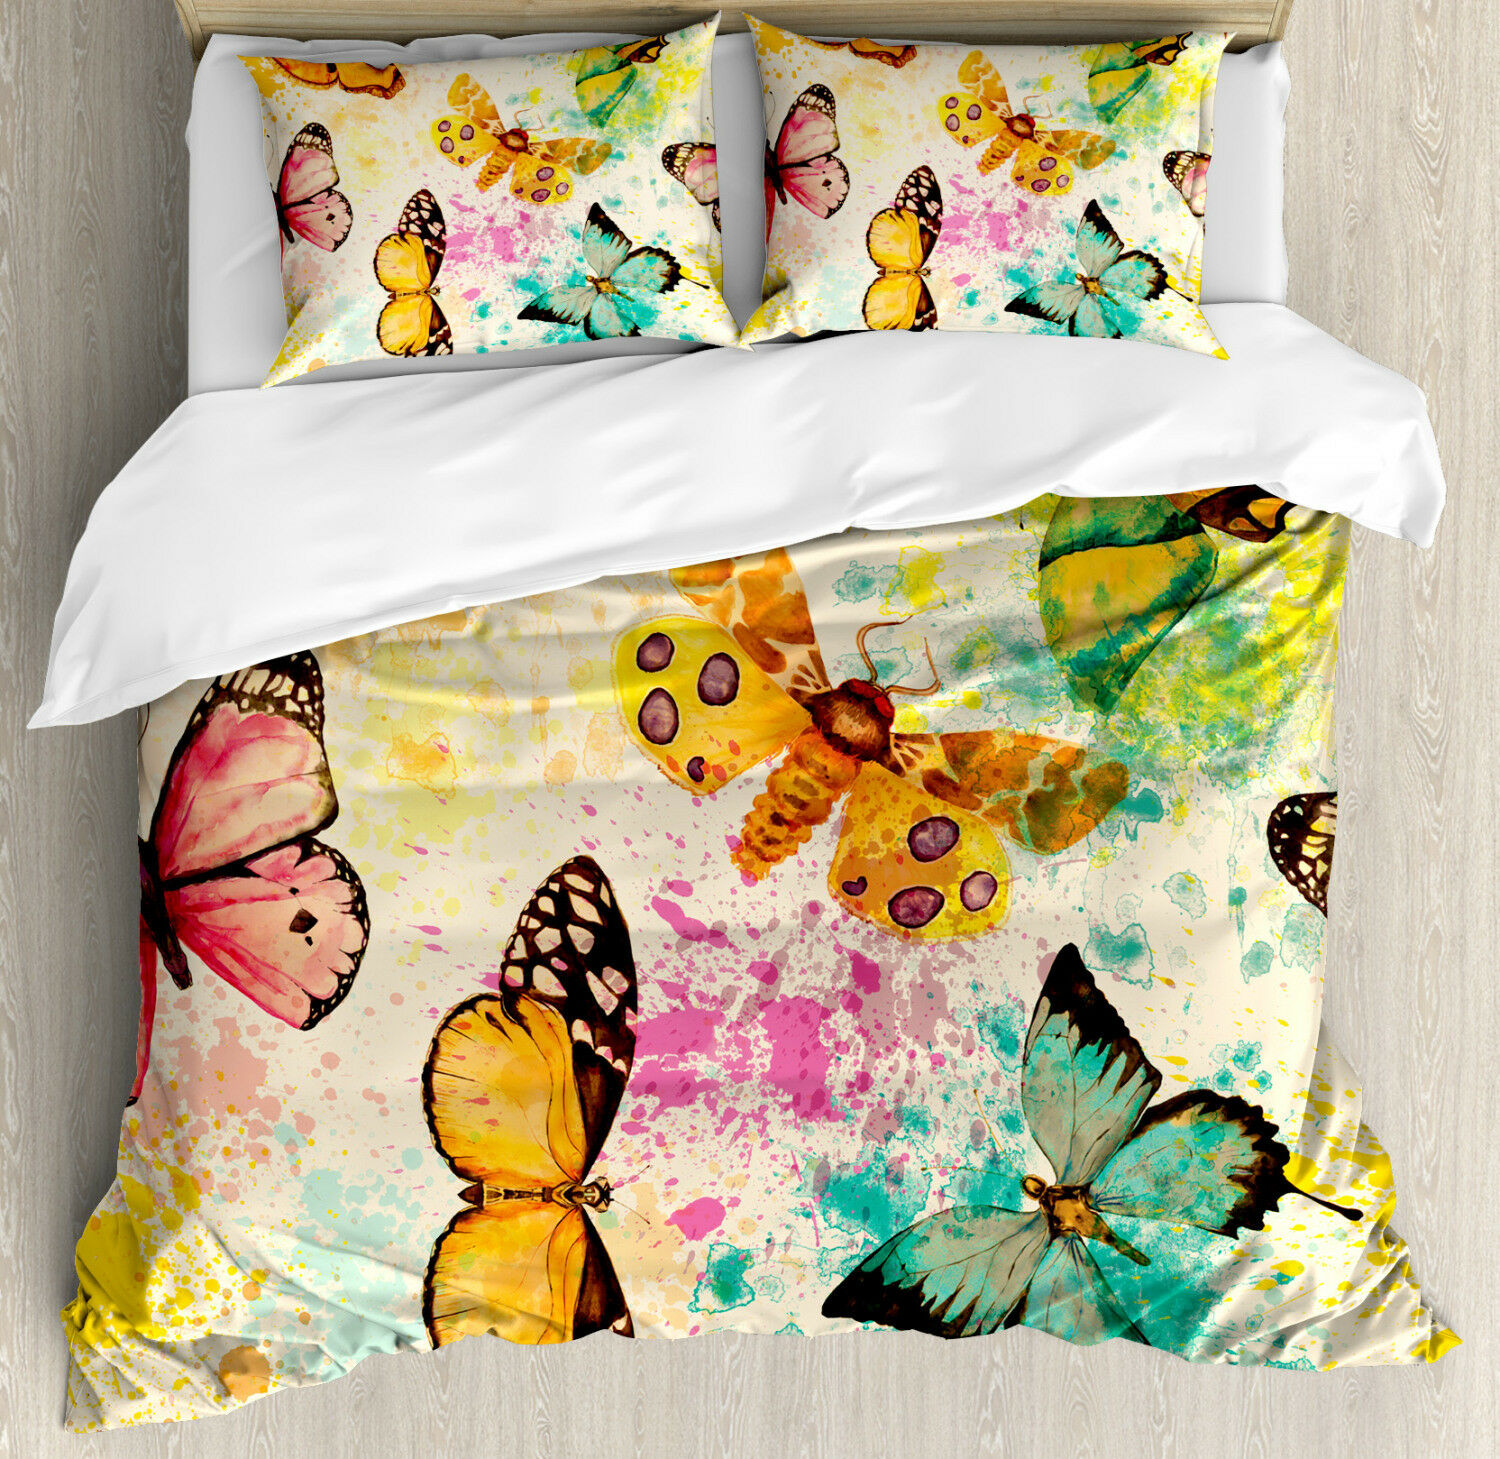 Coloreeful Duvet Cover Set with Pillow Shams Murky Grungy Butterfly Print